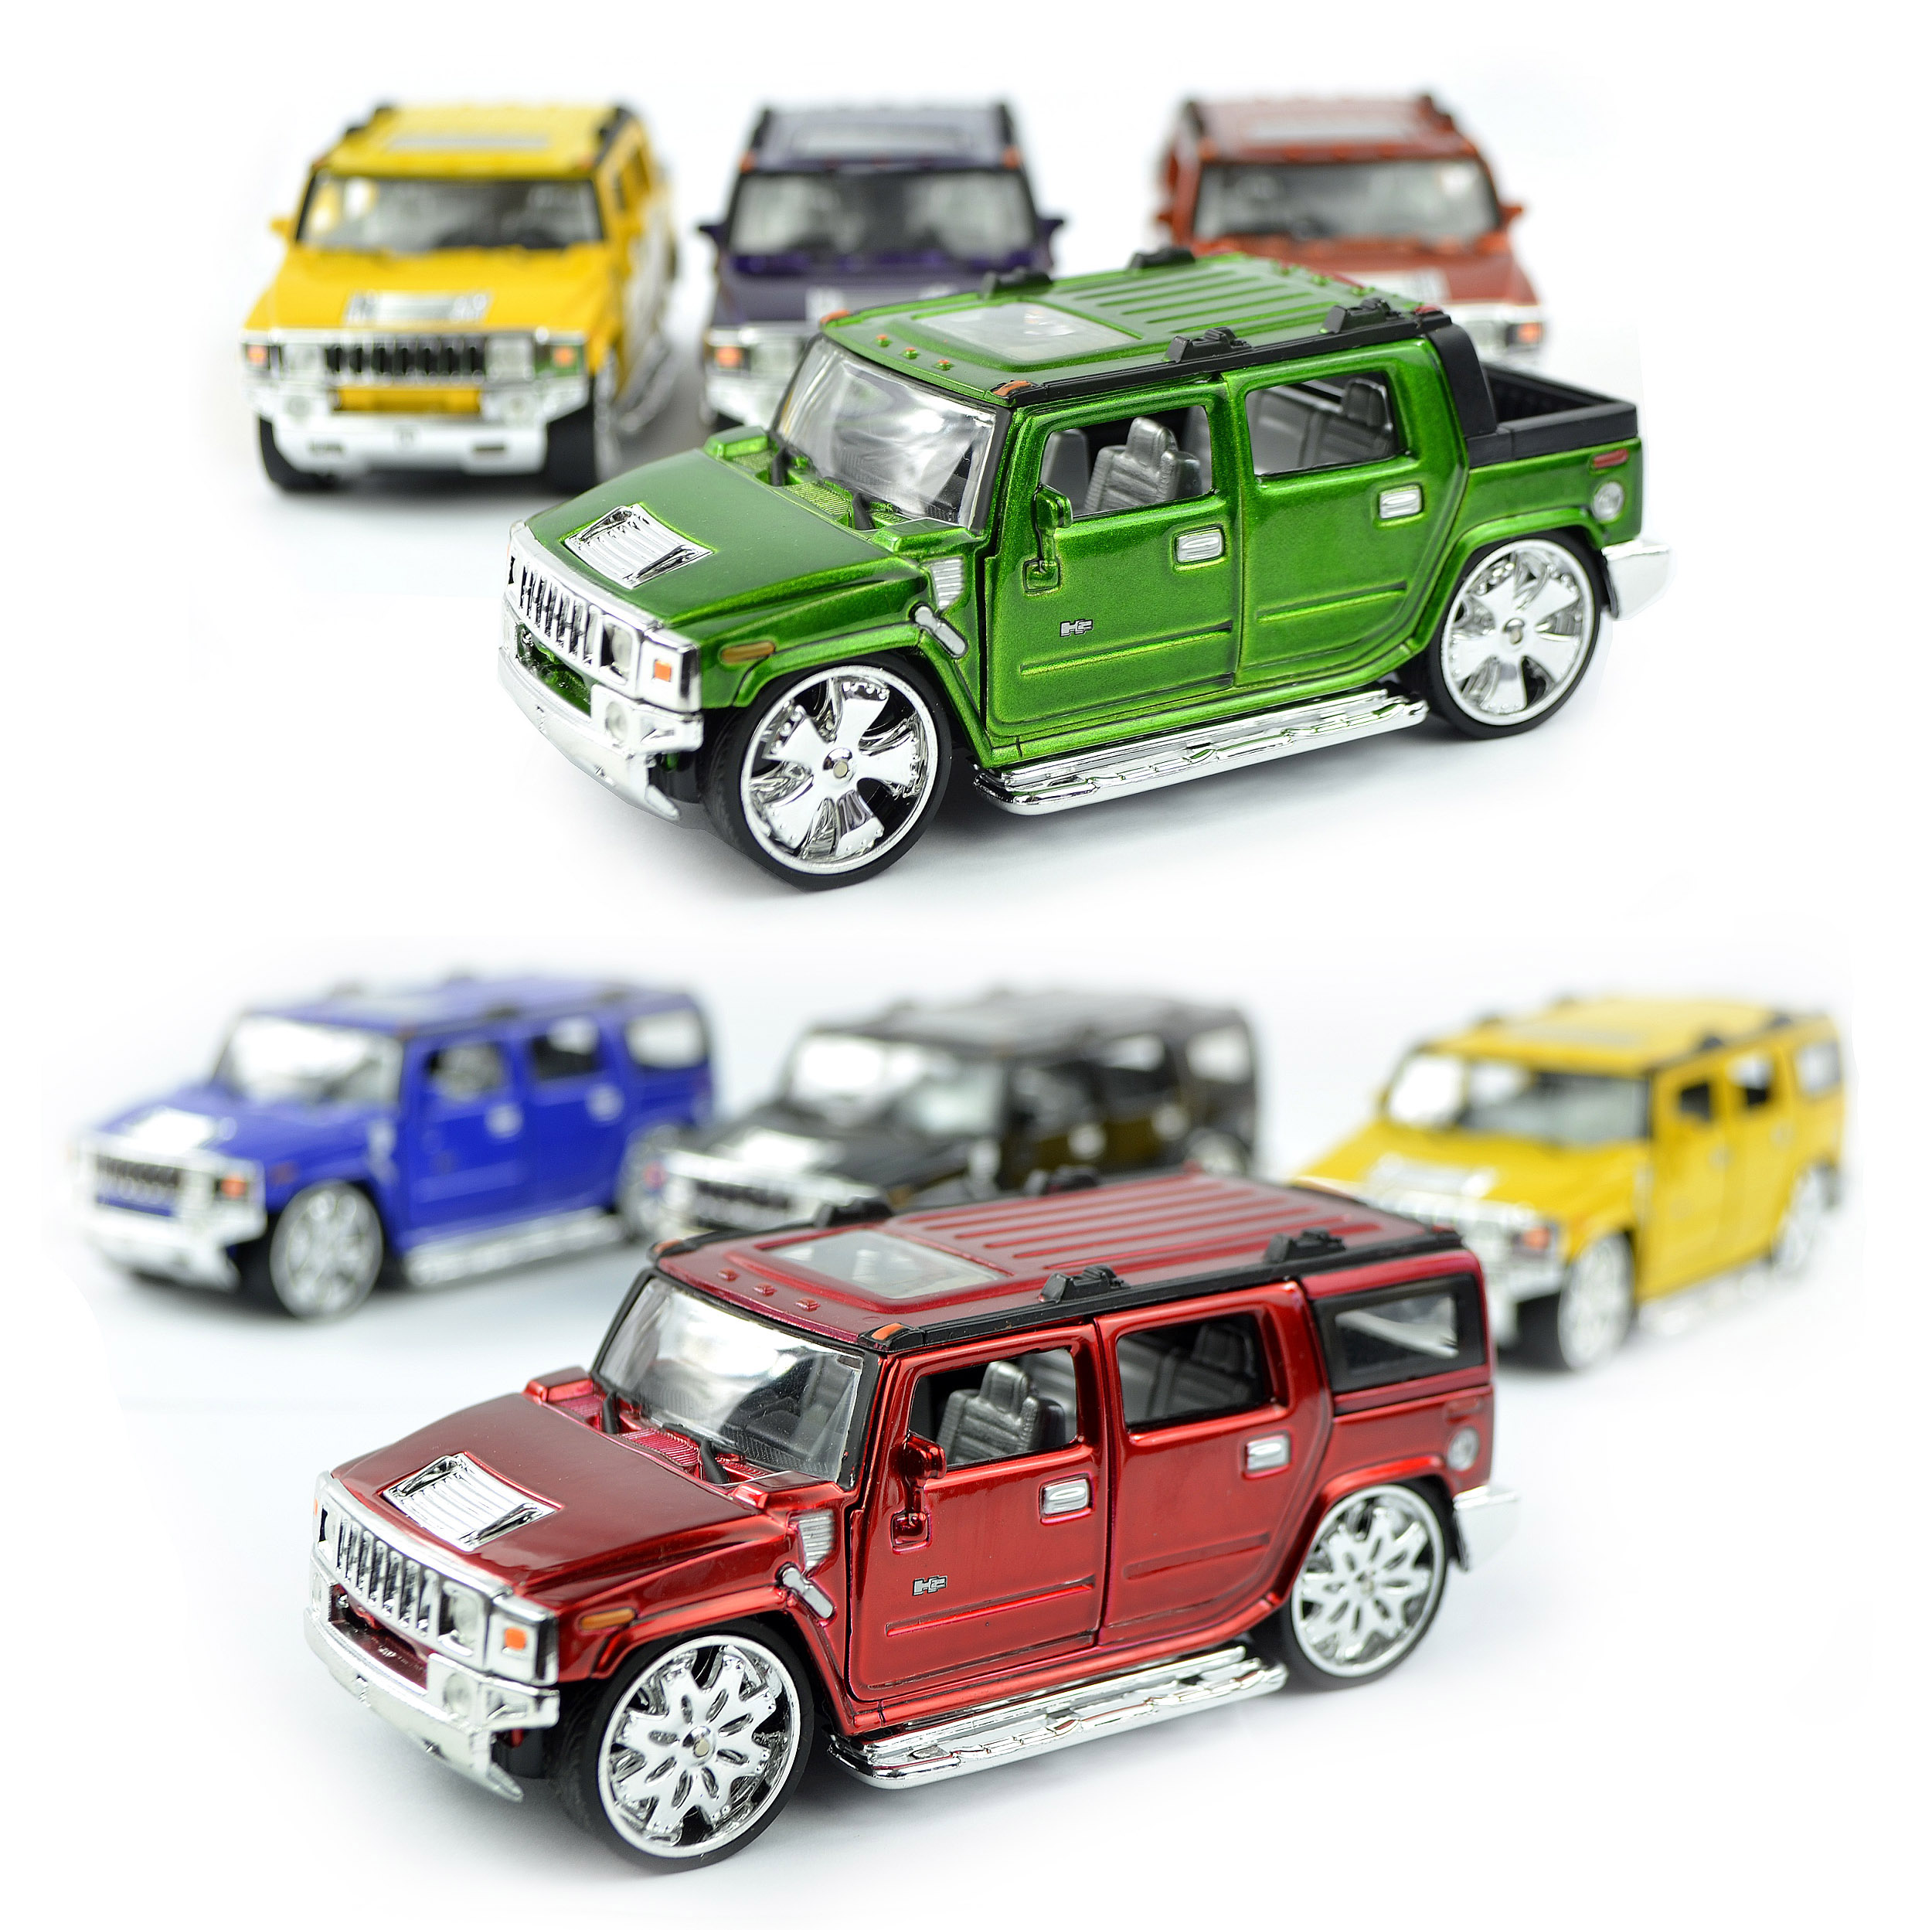 Hummer H2 Diecast Truck SUV - DUB Version - Chrome Rims and Metallic Paint